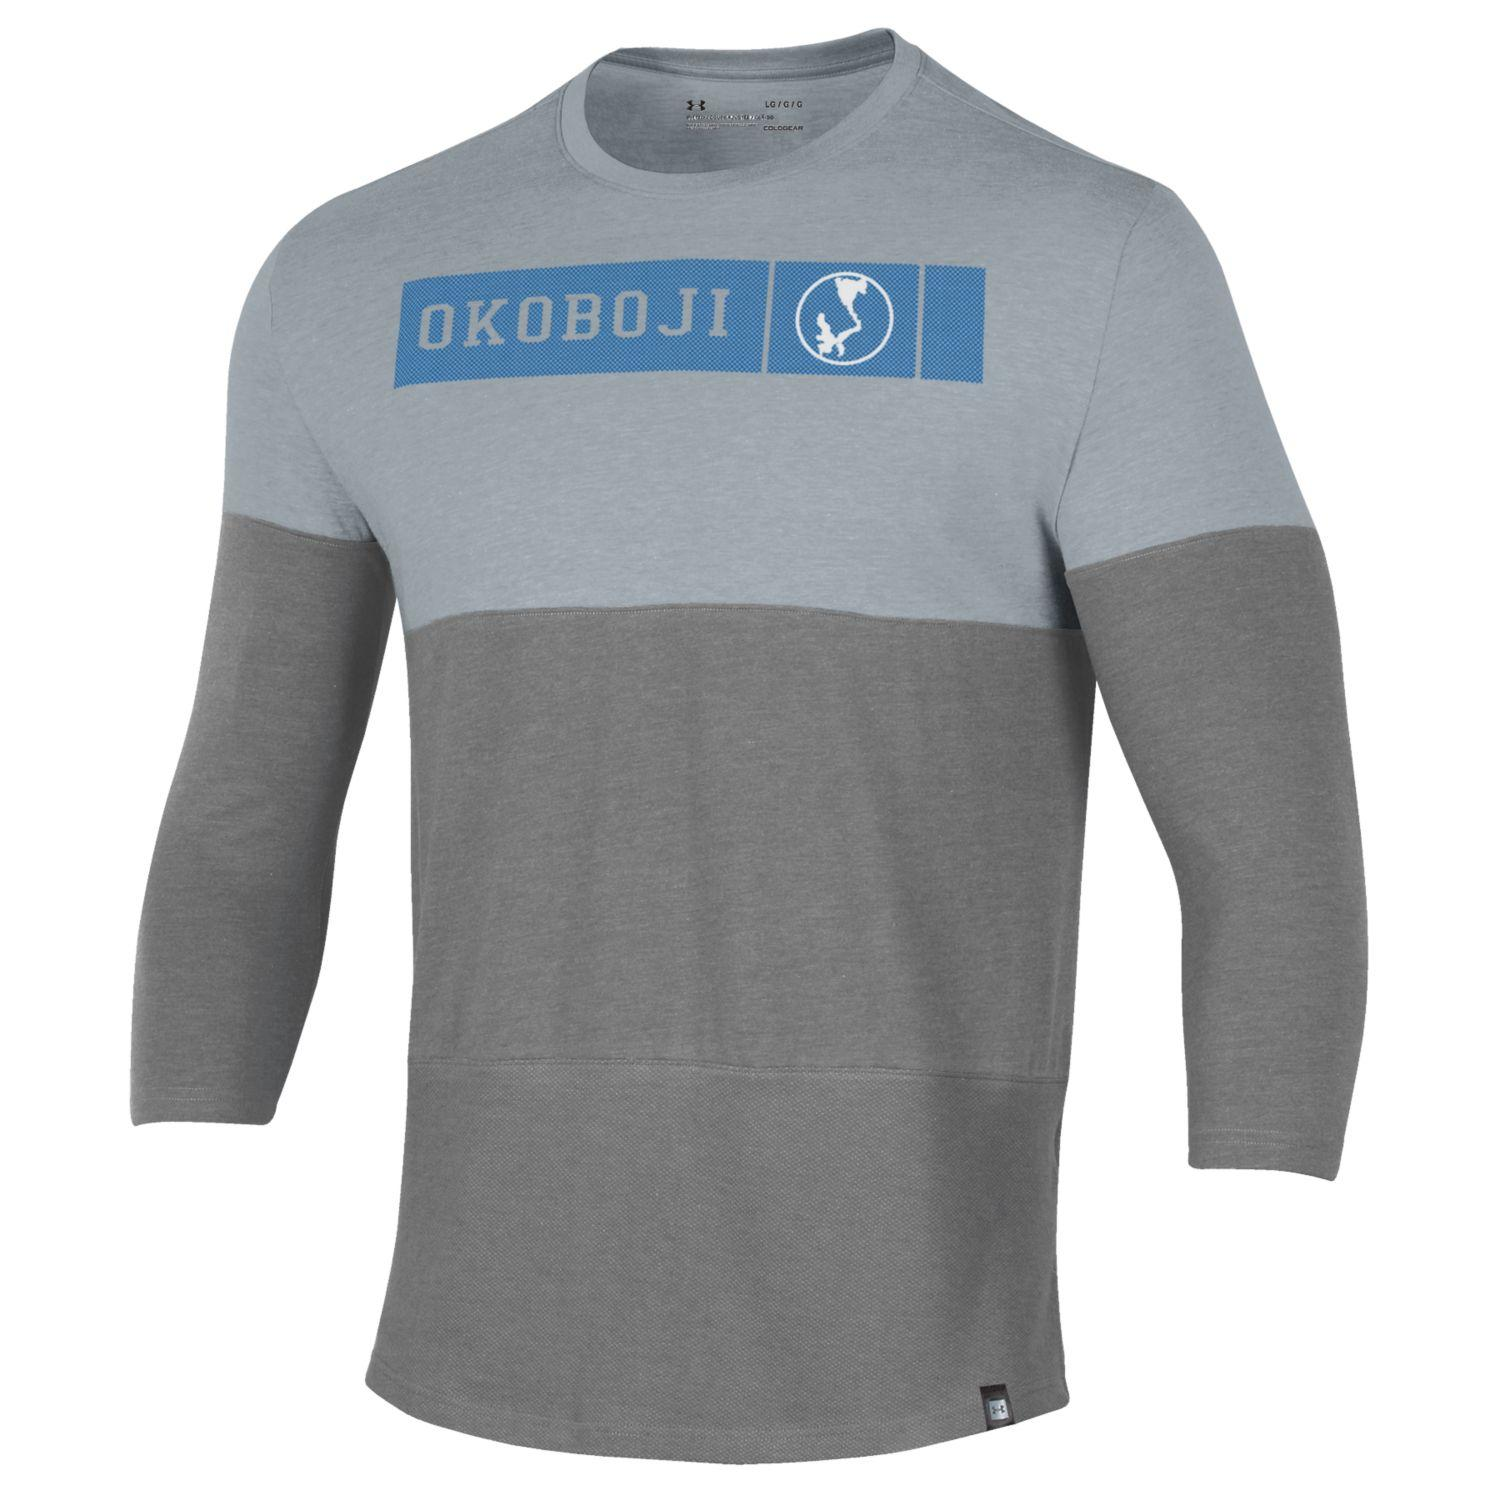 OKOBOJI TRAINING CAMP 3/4 TEE